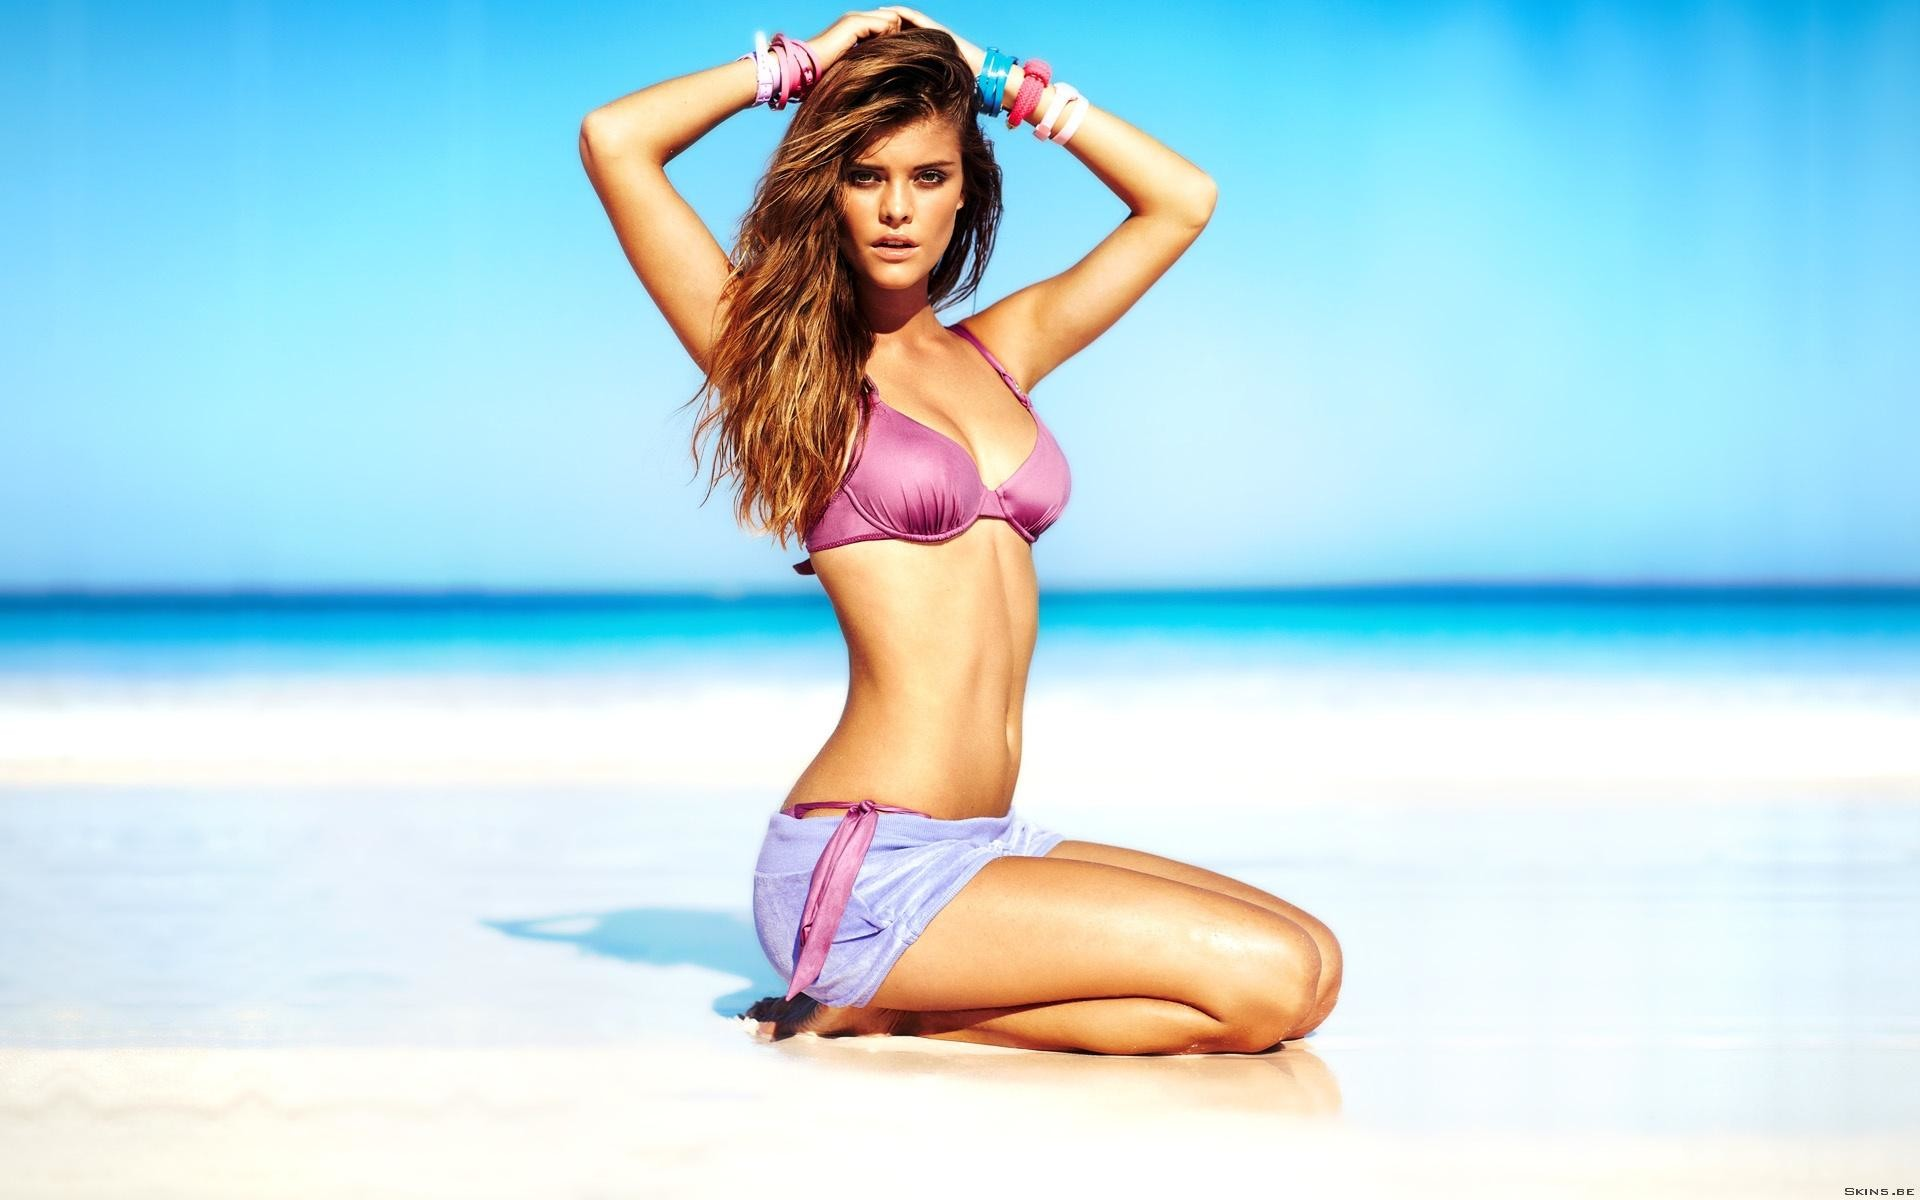 Wallpaper Victoria Secret 57 Images